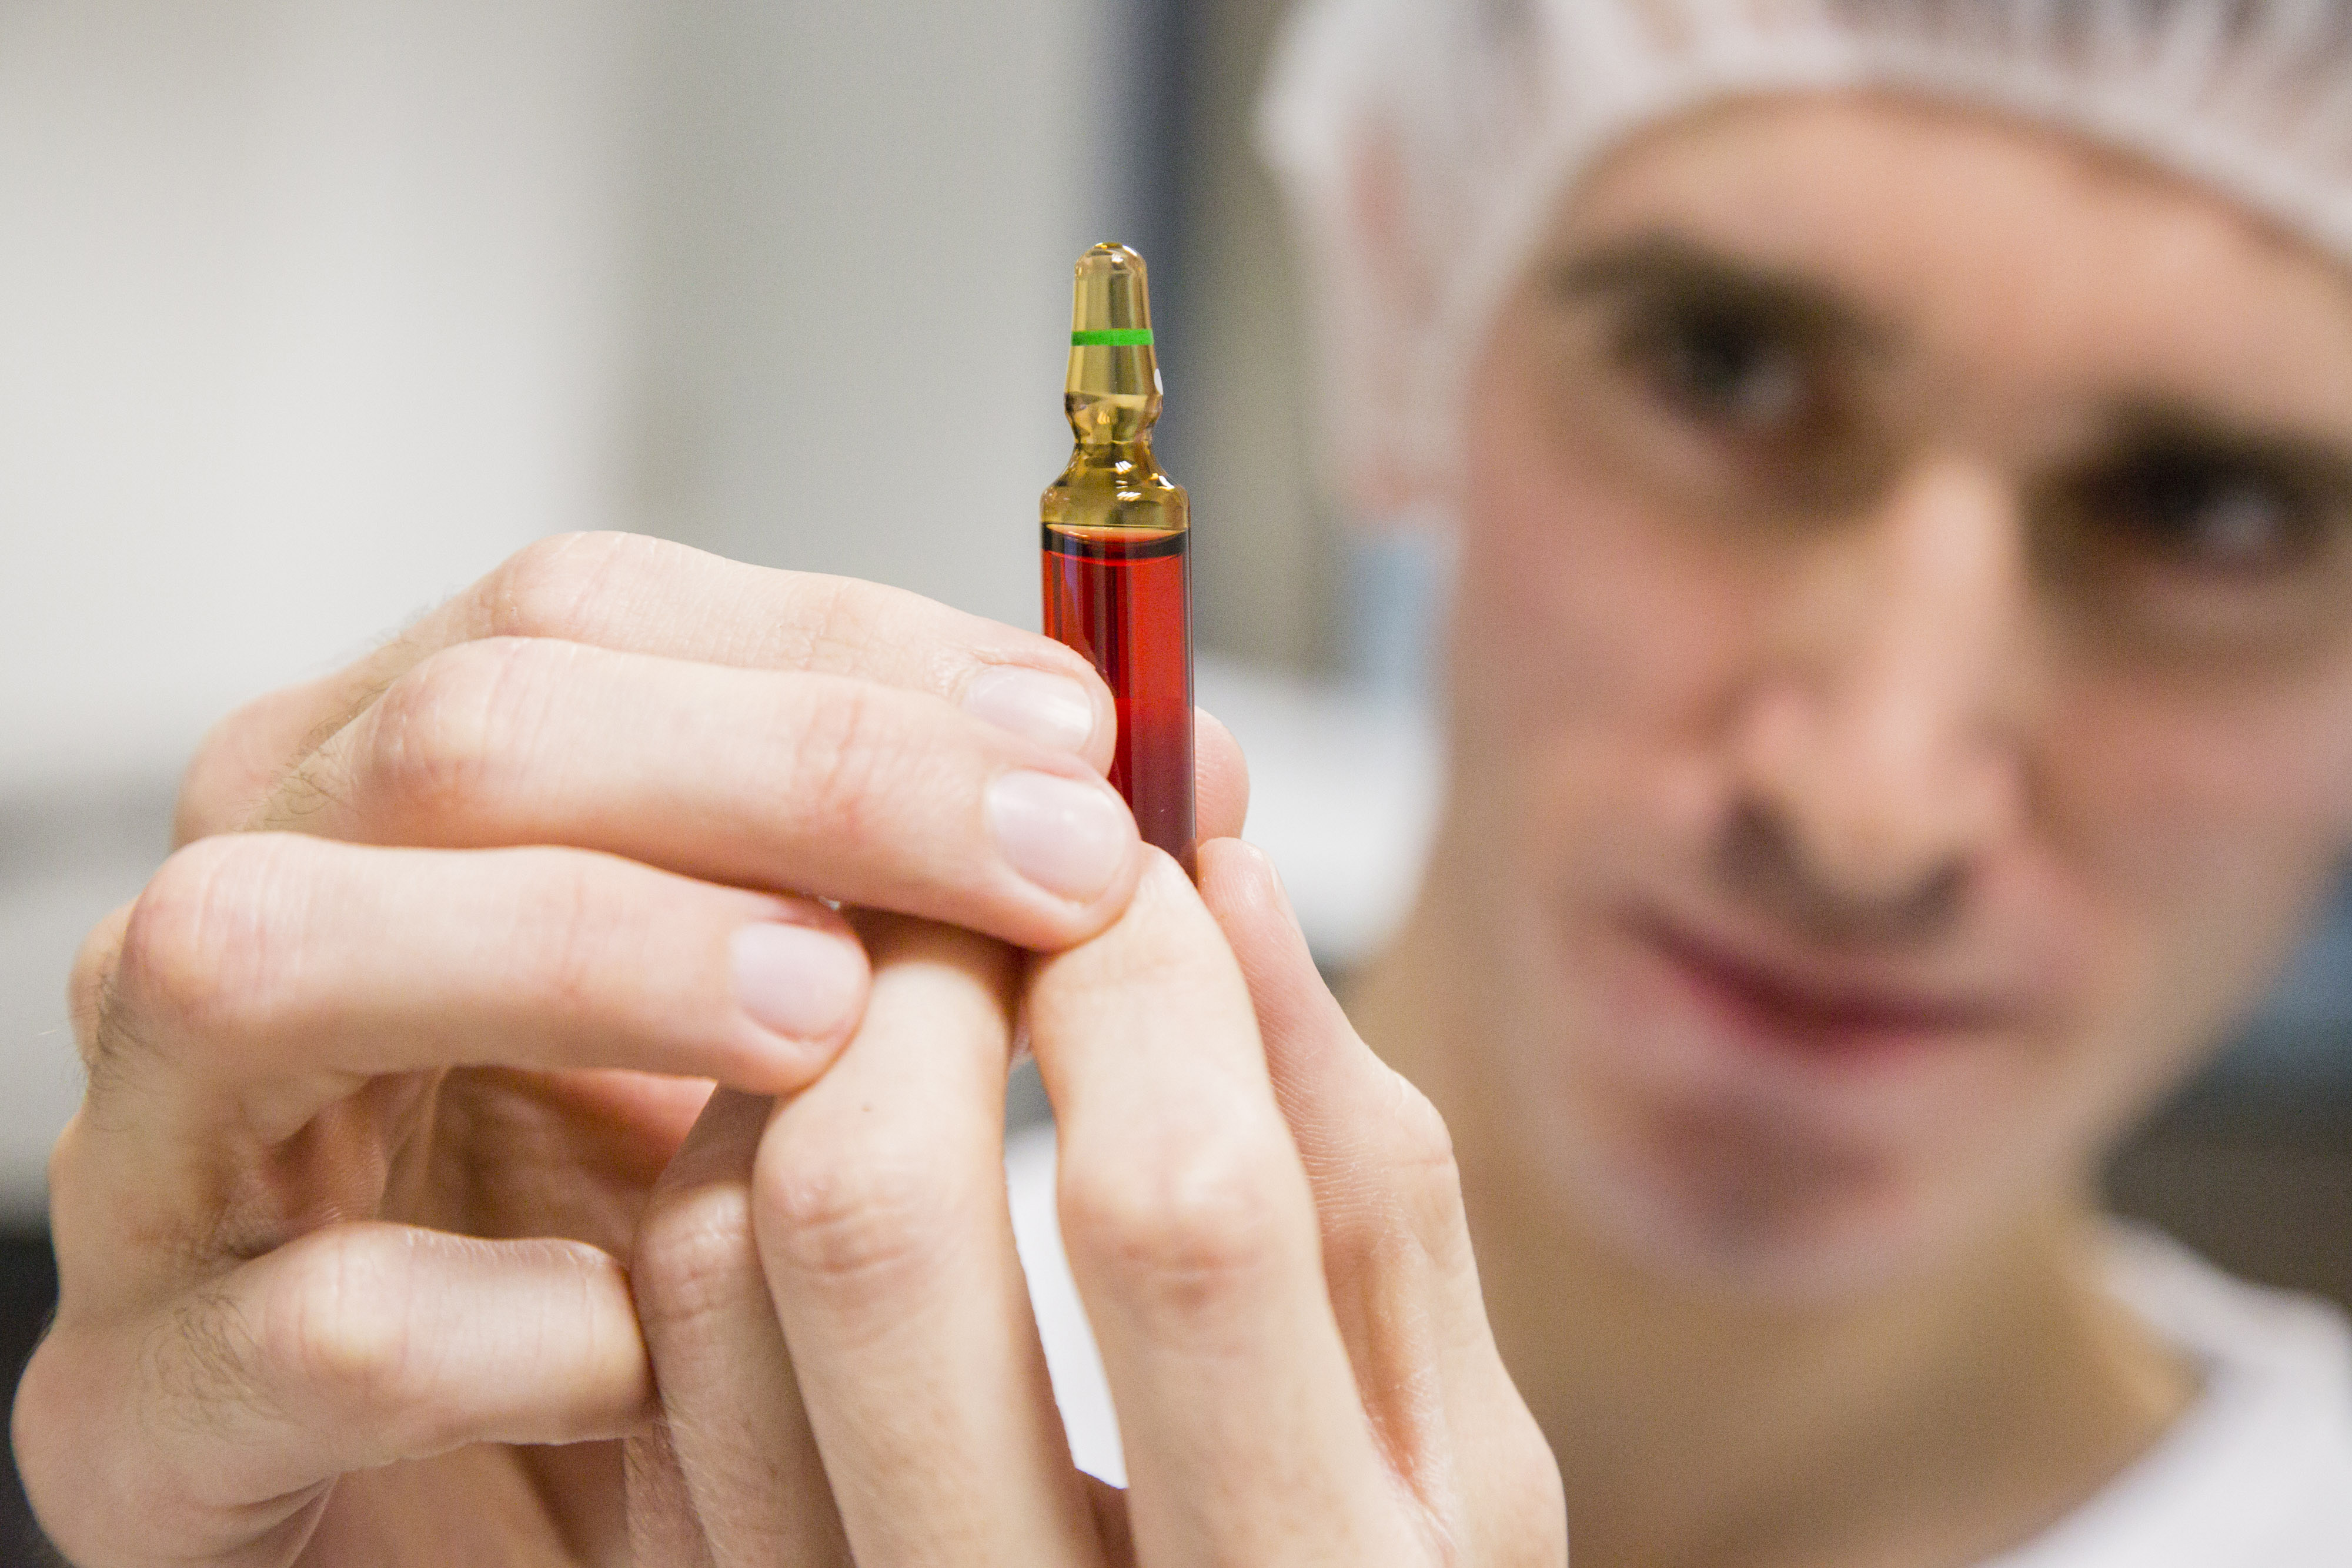 An employee inspects an ampoule of Neurobion vitamin supplement inside Merck KGaA's pharmaceutical laboratories